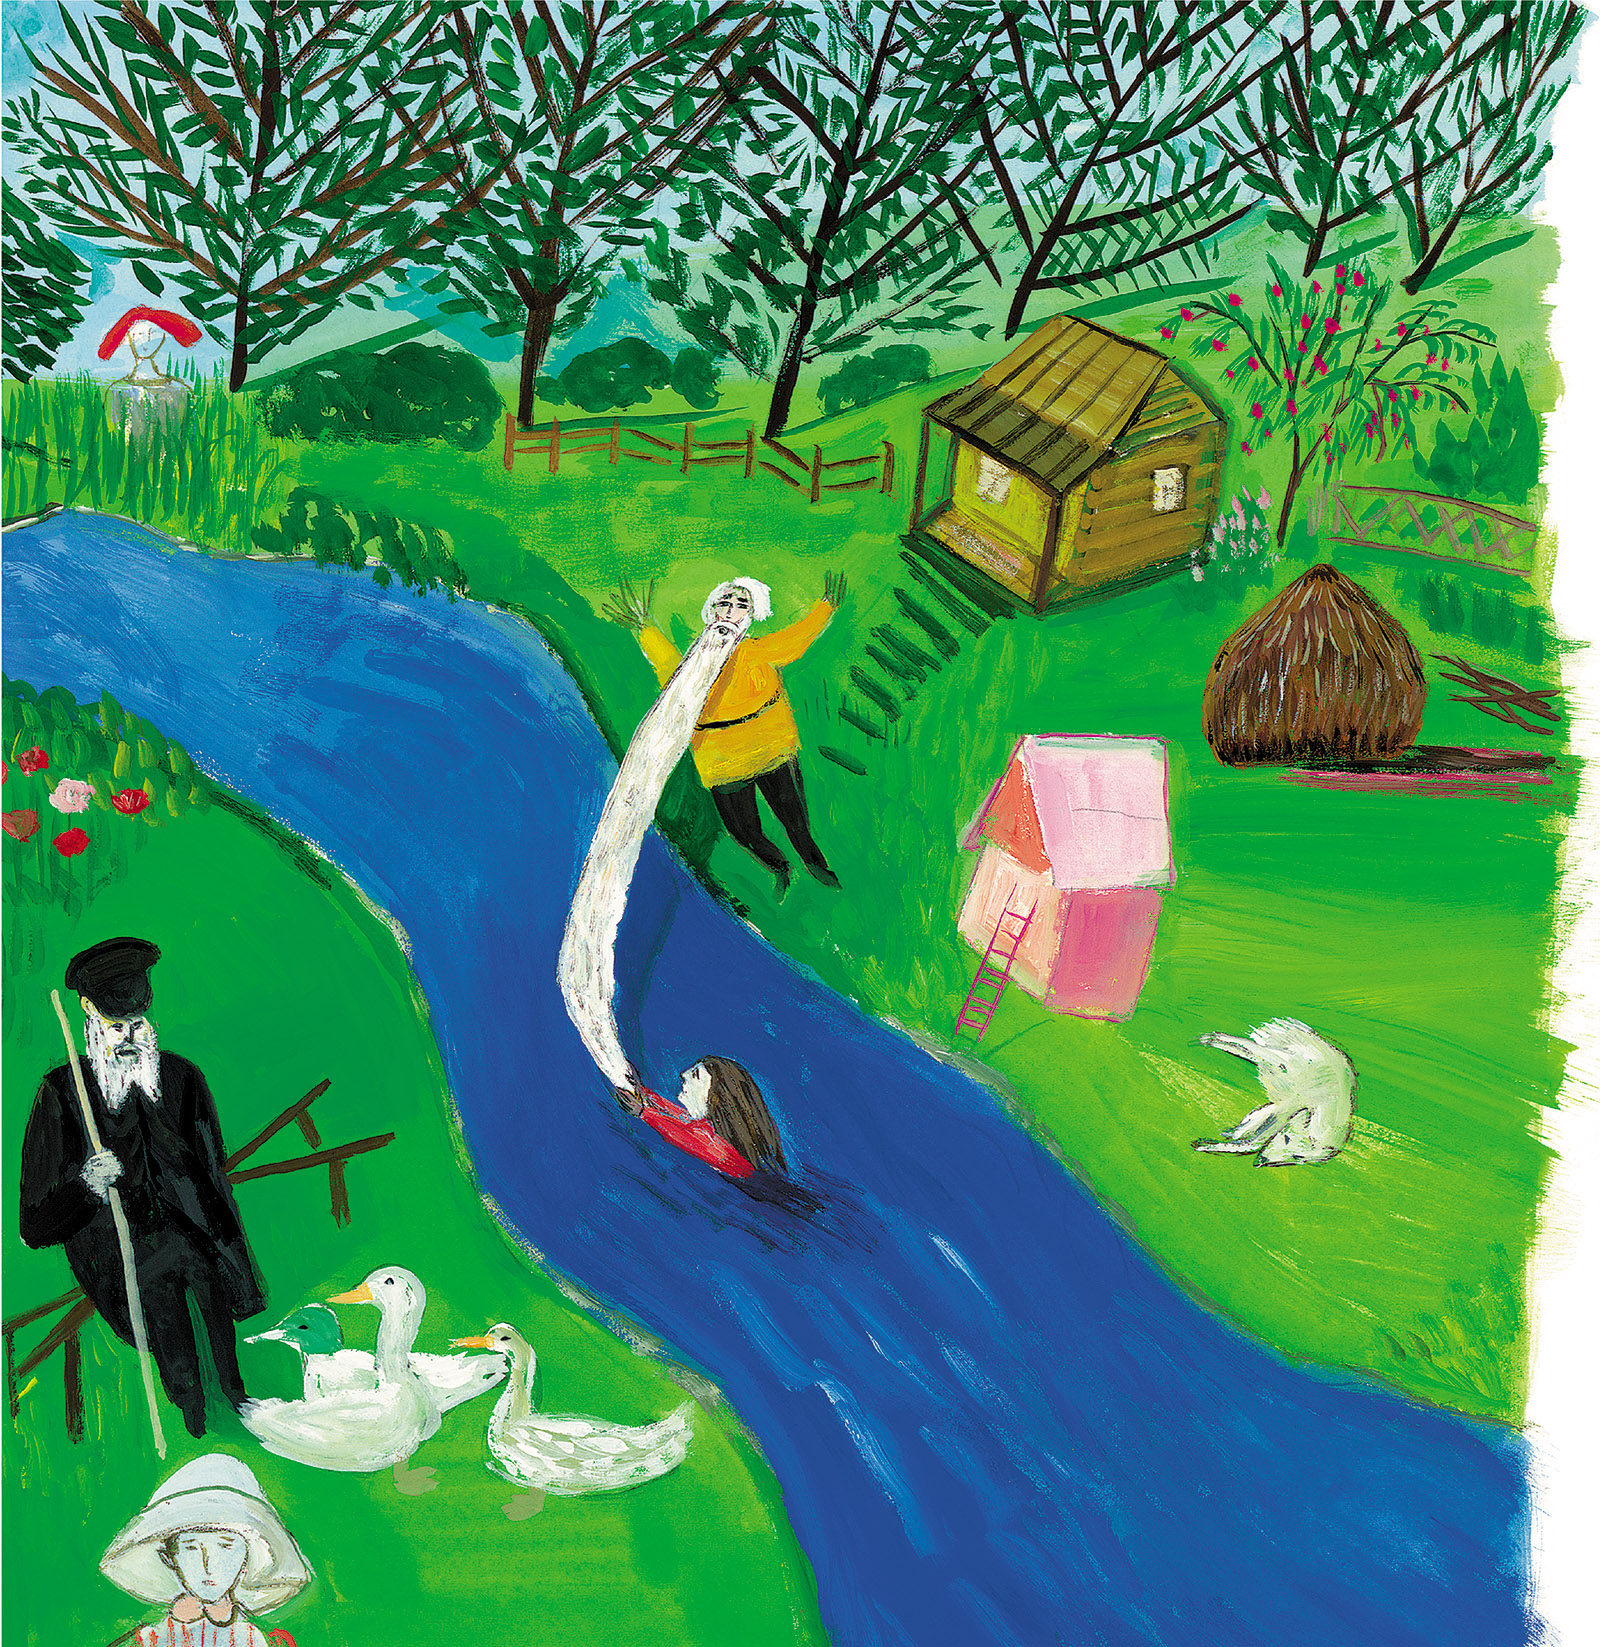 Painting by Maira Kalman from Sara Berman's Closet, an illustrated family memoir created with her son, Alex Kalman, after their museum exhibition of the same name. It has just been published by Harper Design.